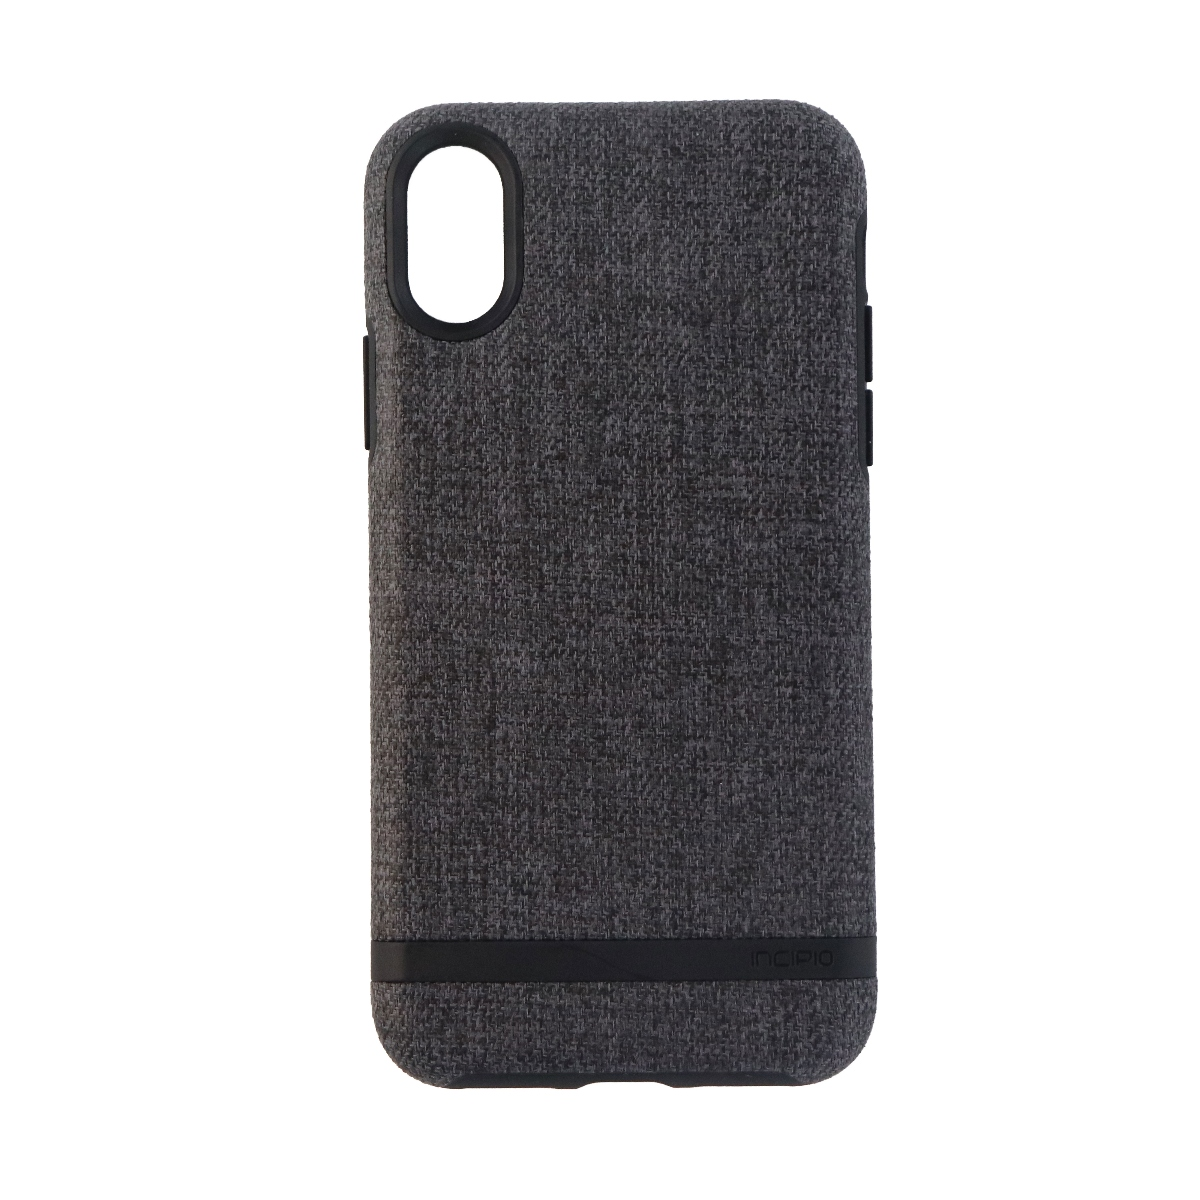 Incipio Esquire Series Hard Fabric Case for Apple iPhone X 10 - Dark Gray/Black